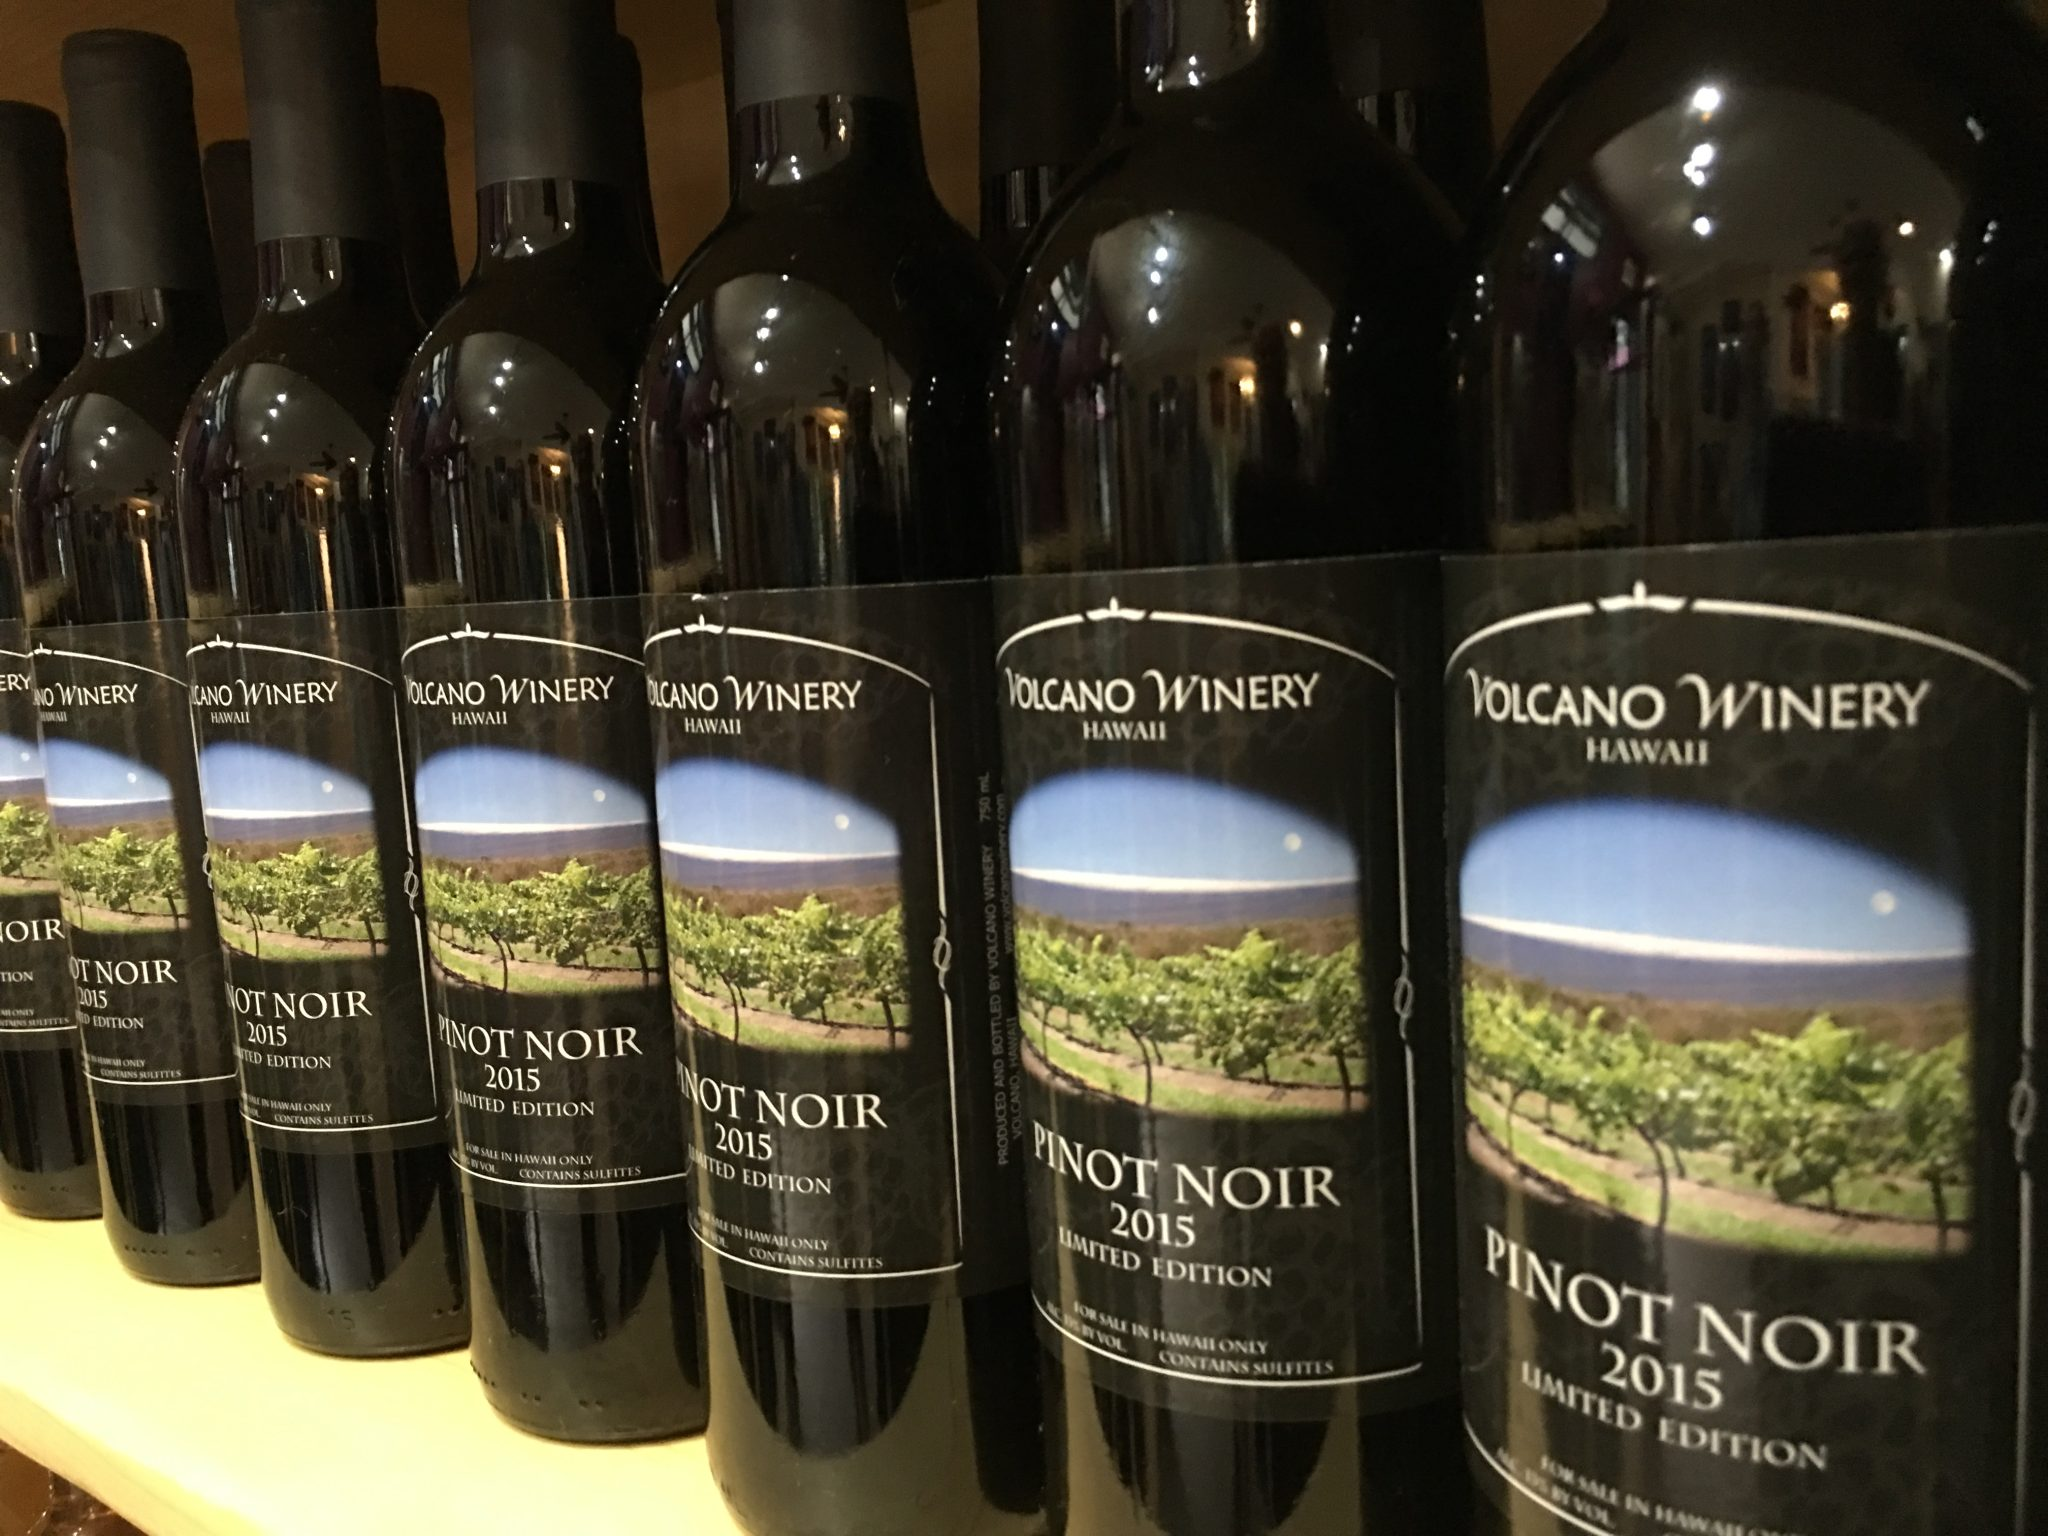 Volcano Winery: For the Love of Grapes and Guava